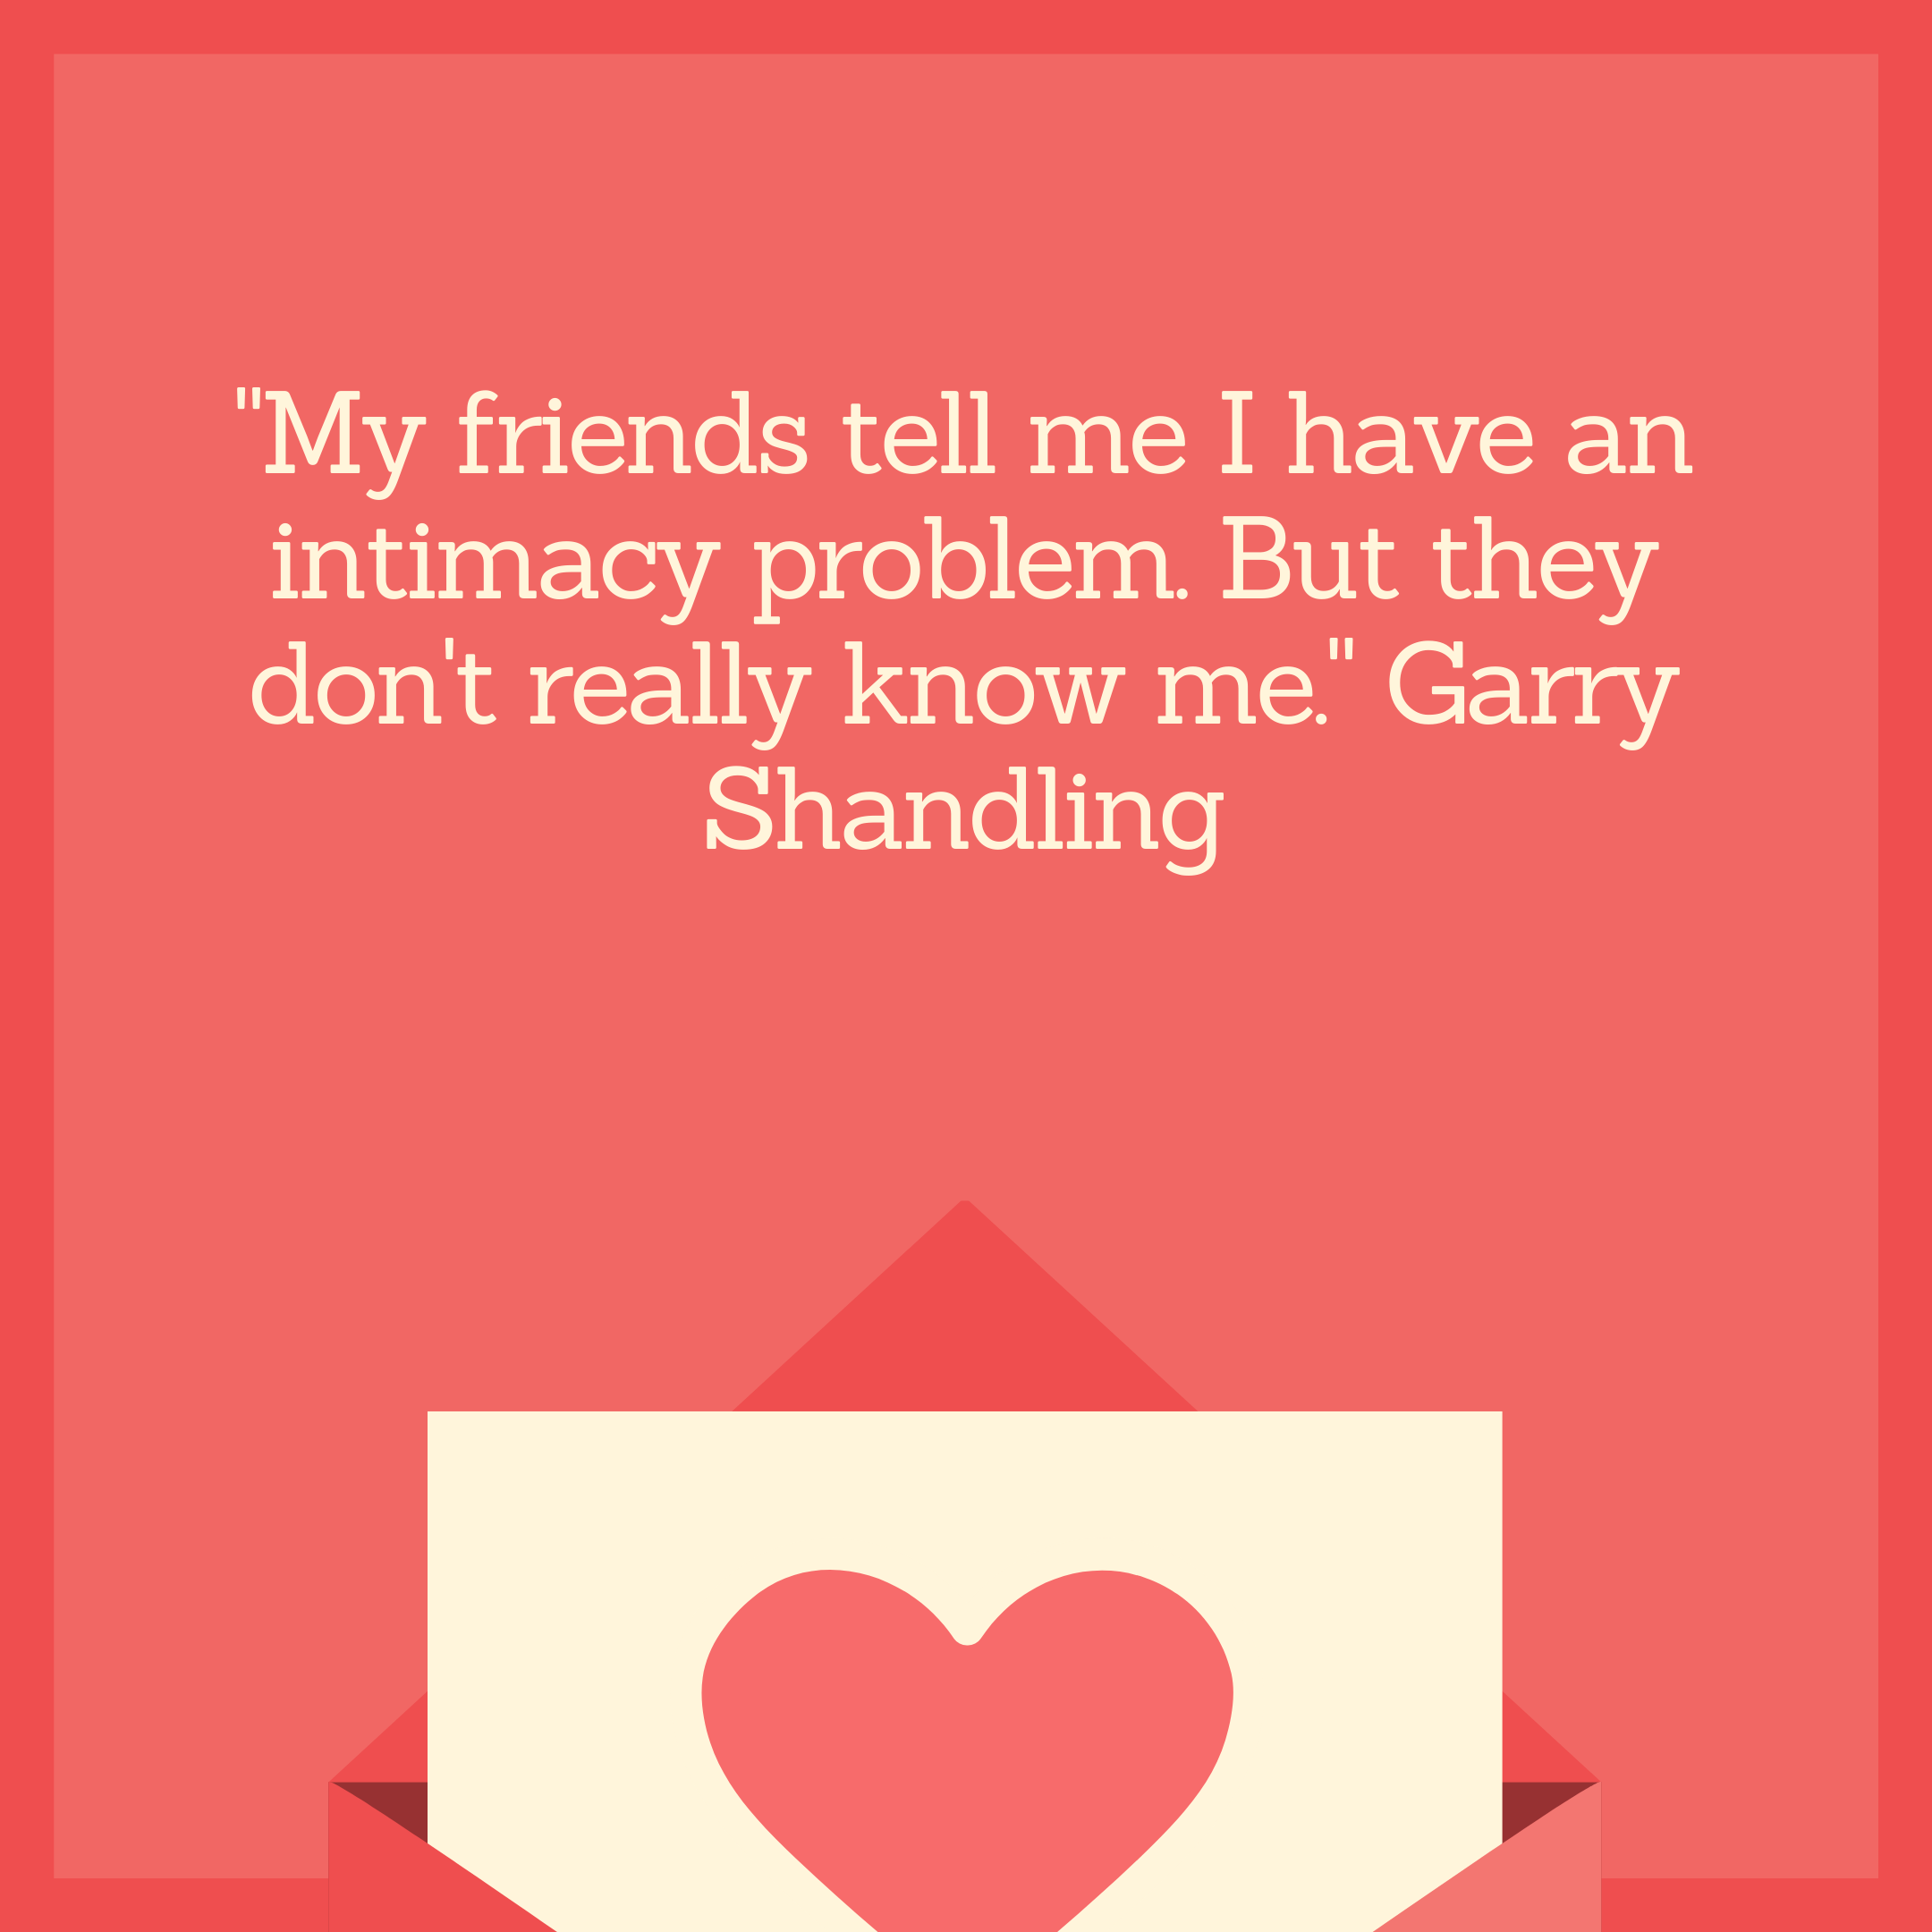 """My friends tell me I have an intimacy problem. But they don't really know me."" Garry Shandling"